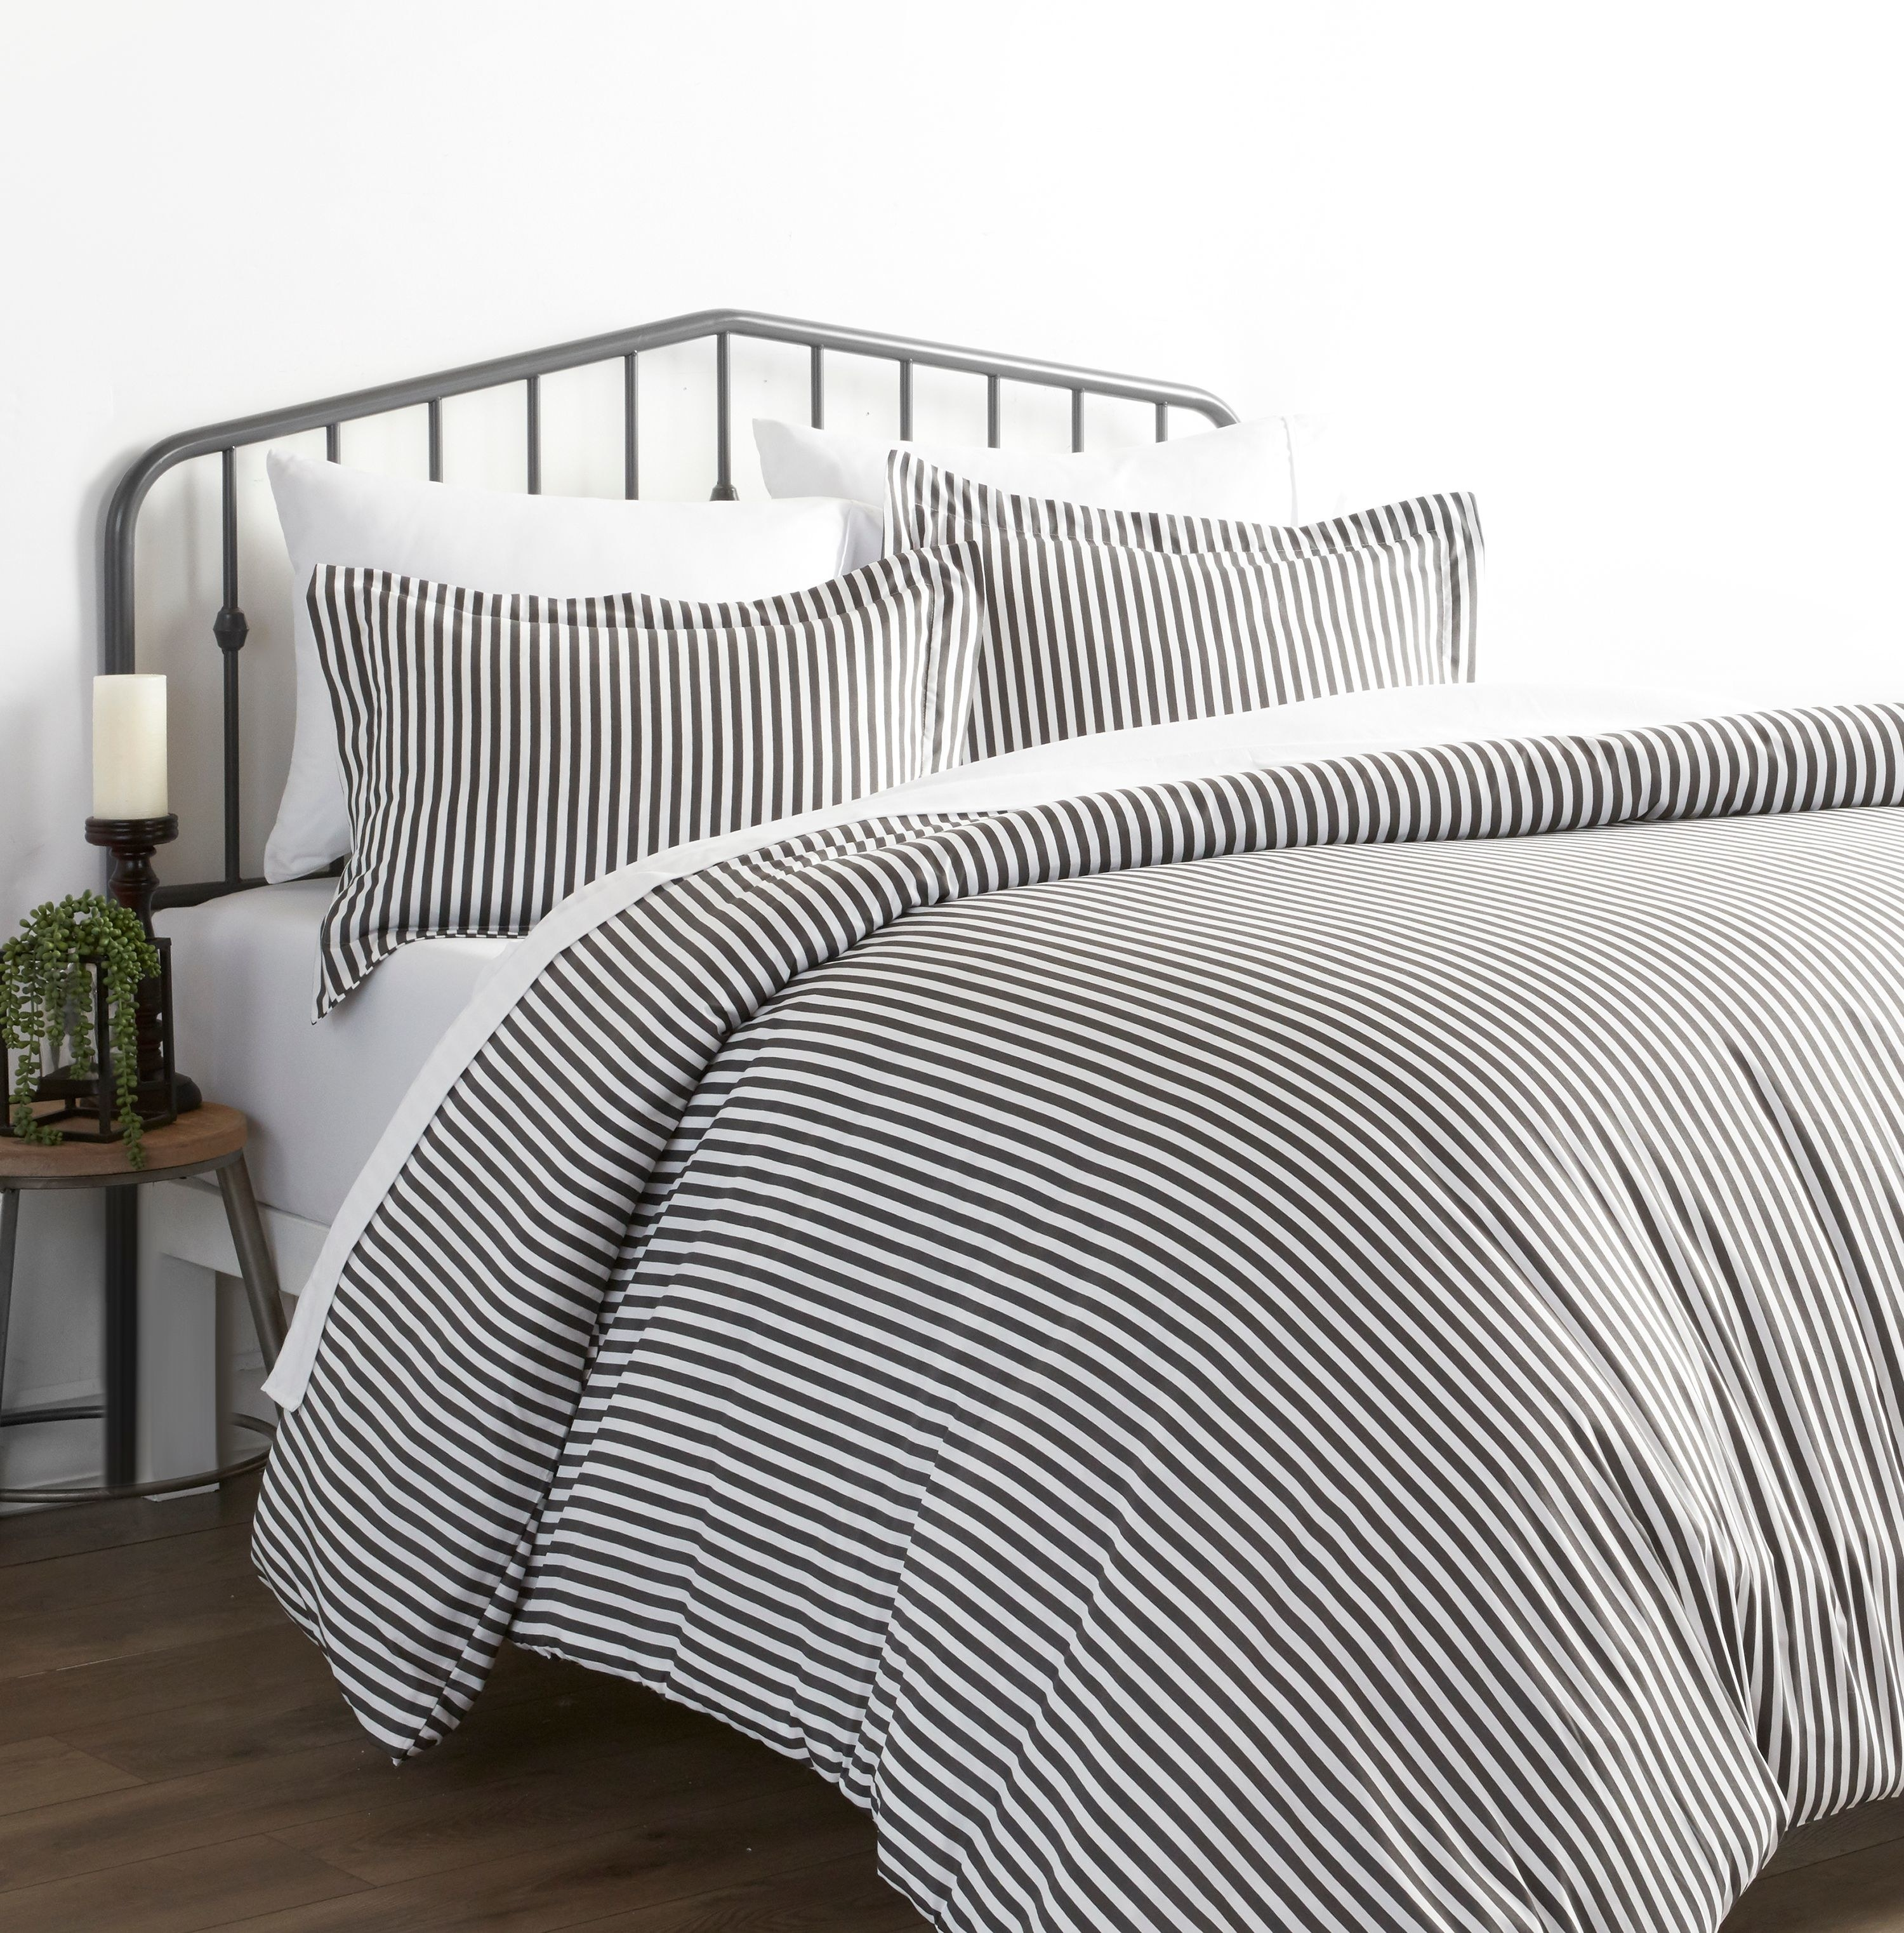 A striped linen set in someone's home